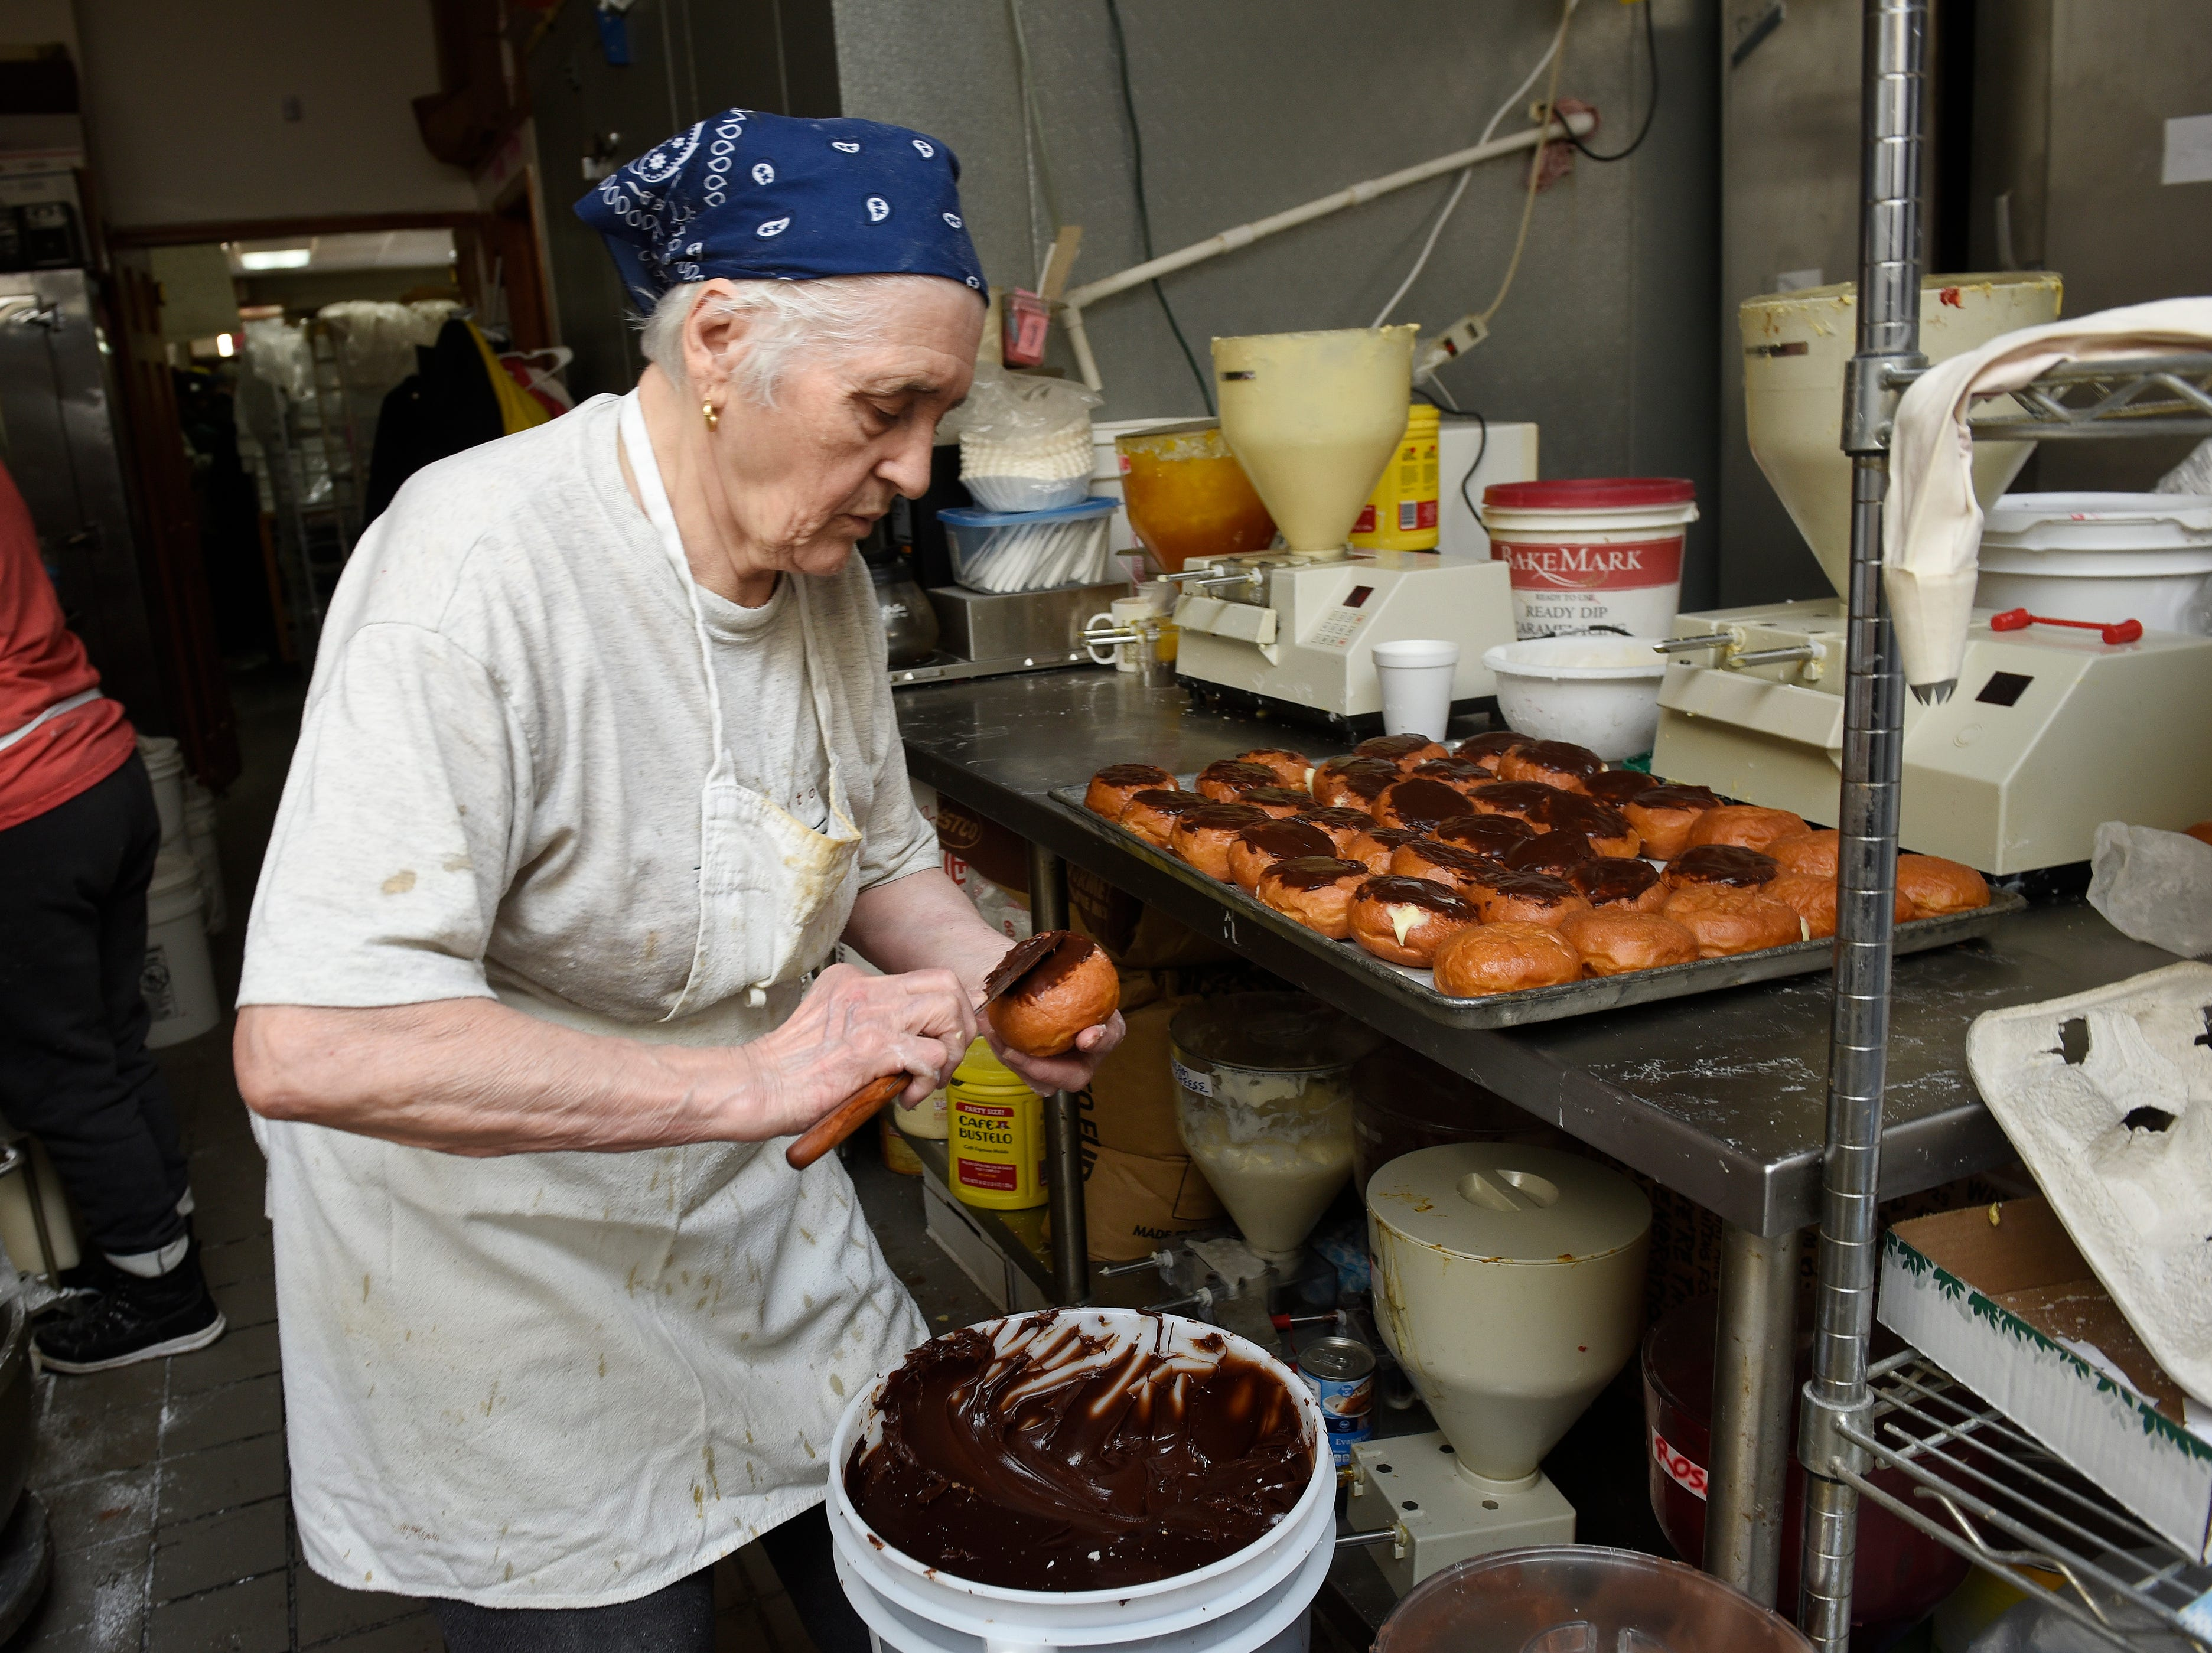 Ivanka Petrovic, co-owner of the bakery applies chocolate fudge on a Boston Cream paczek.